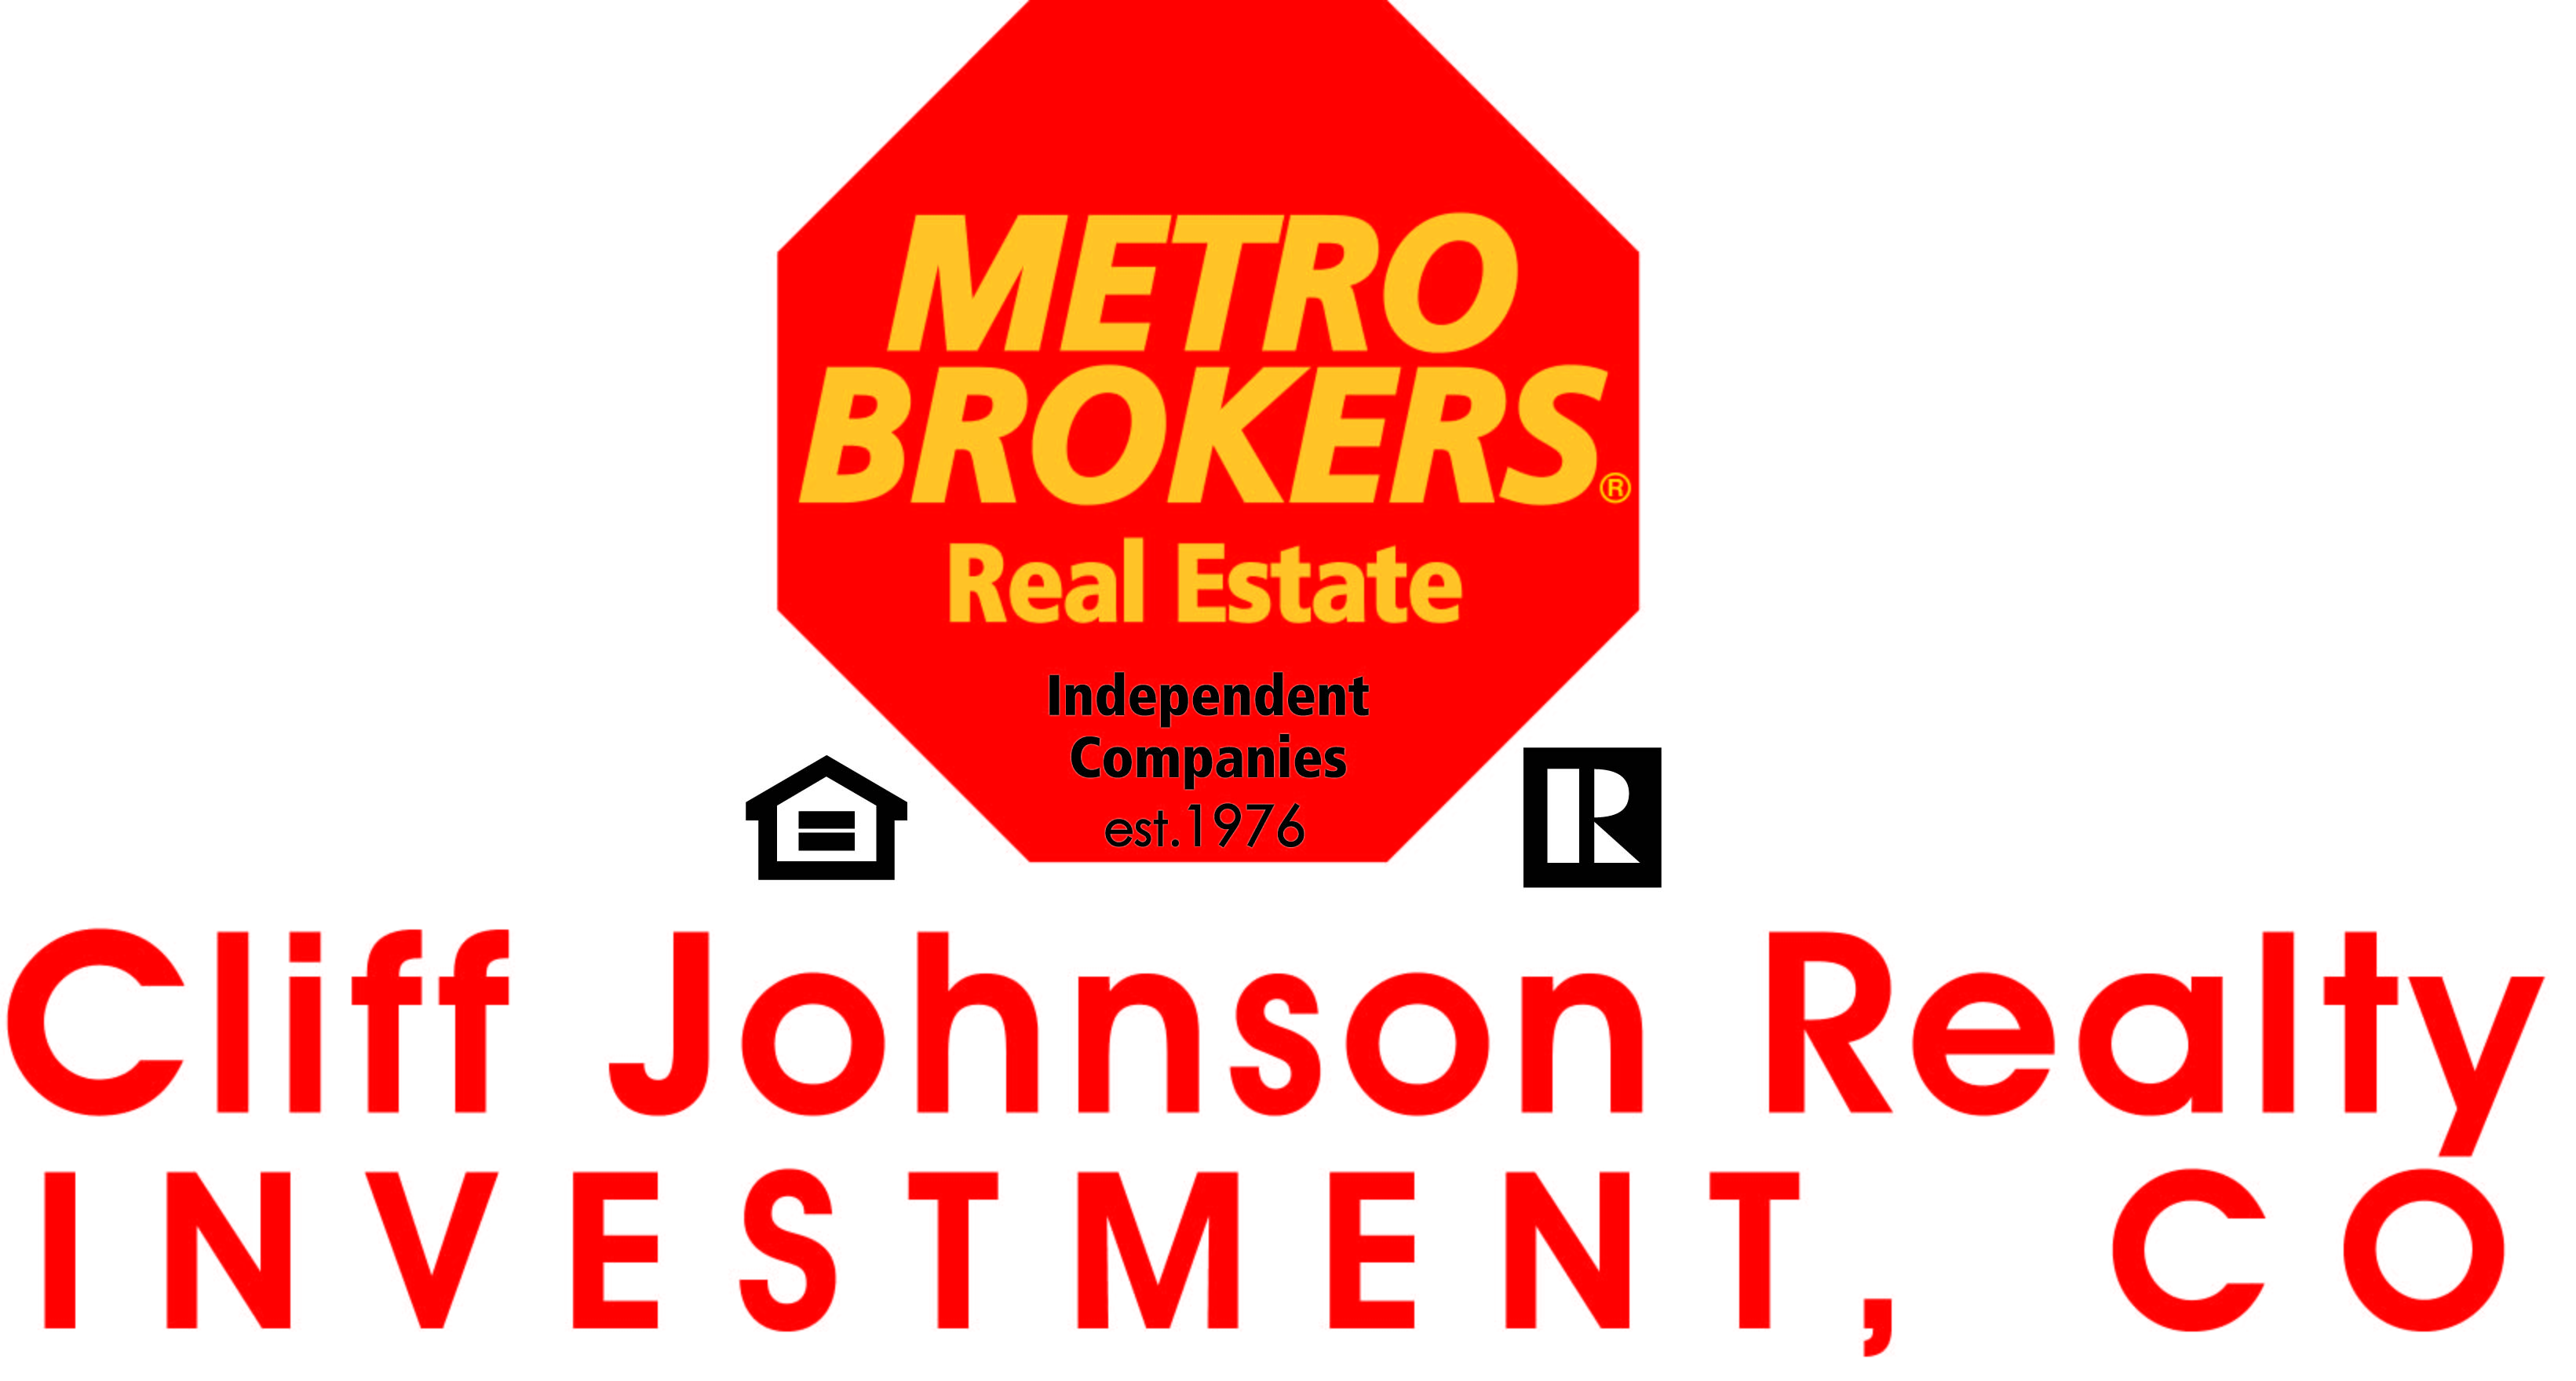 Cliff Johnson Realty Investment Company | Real Estate Home Marketing